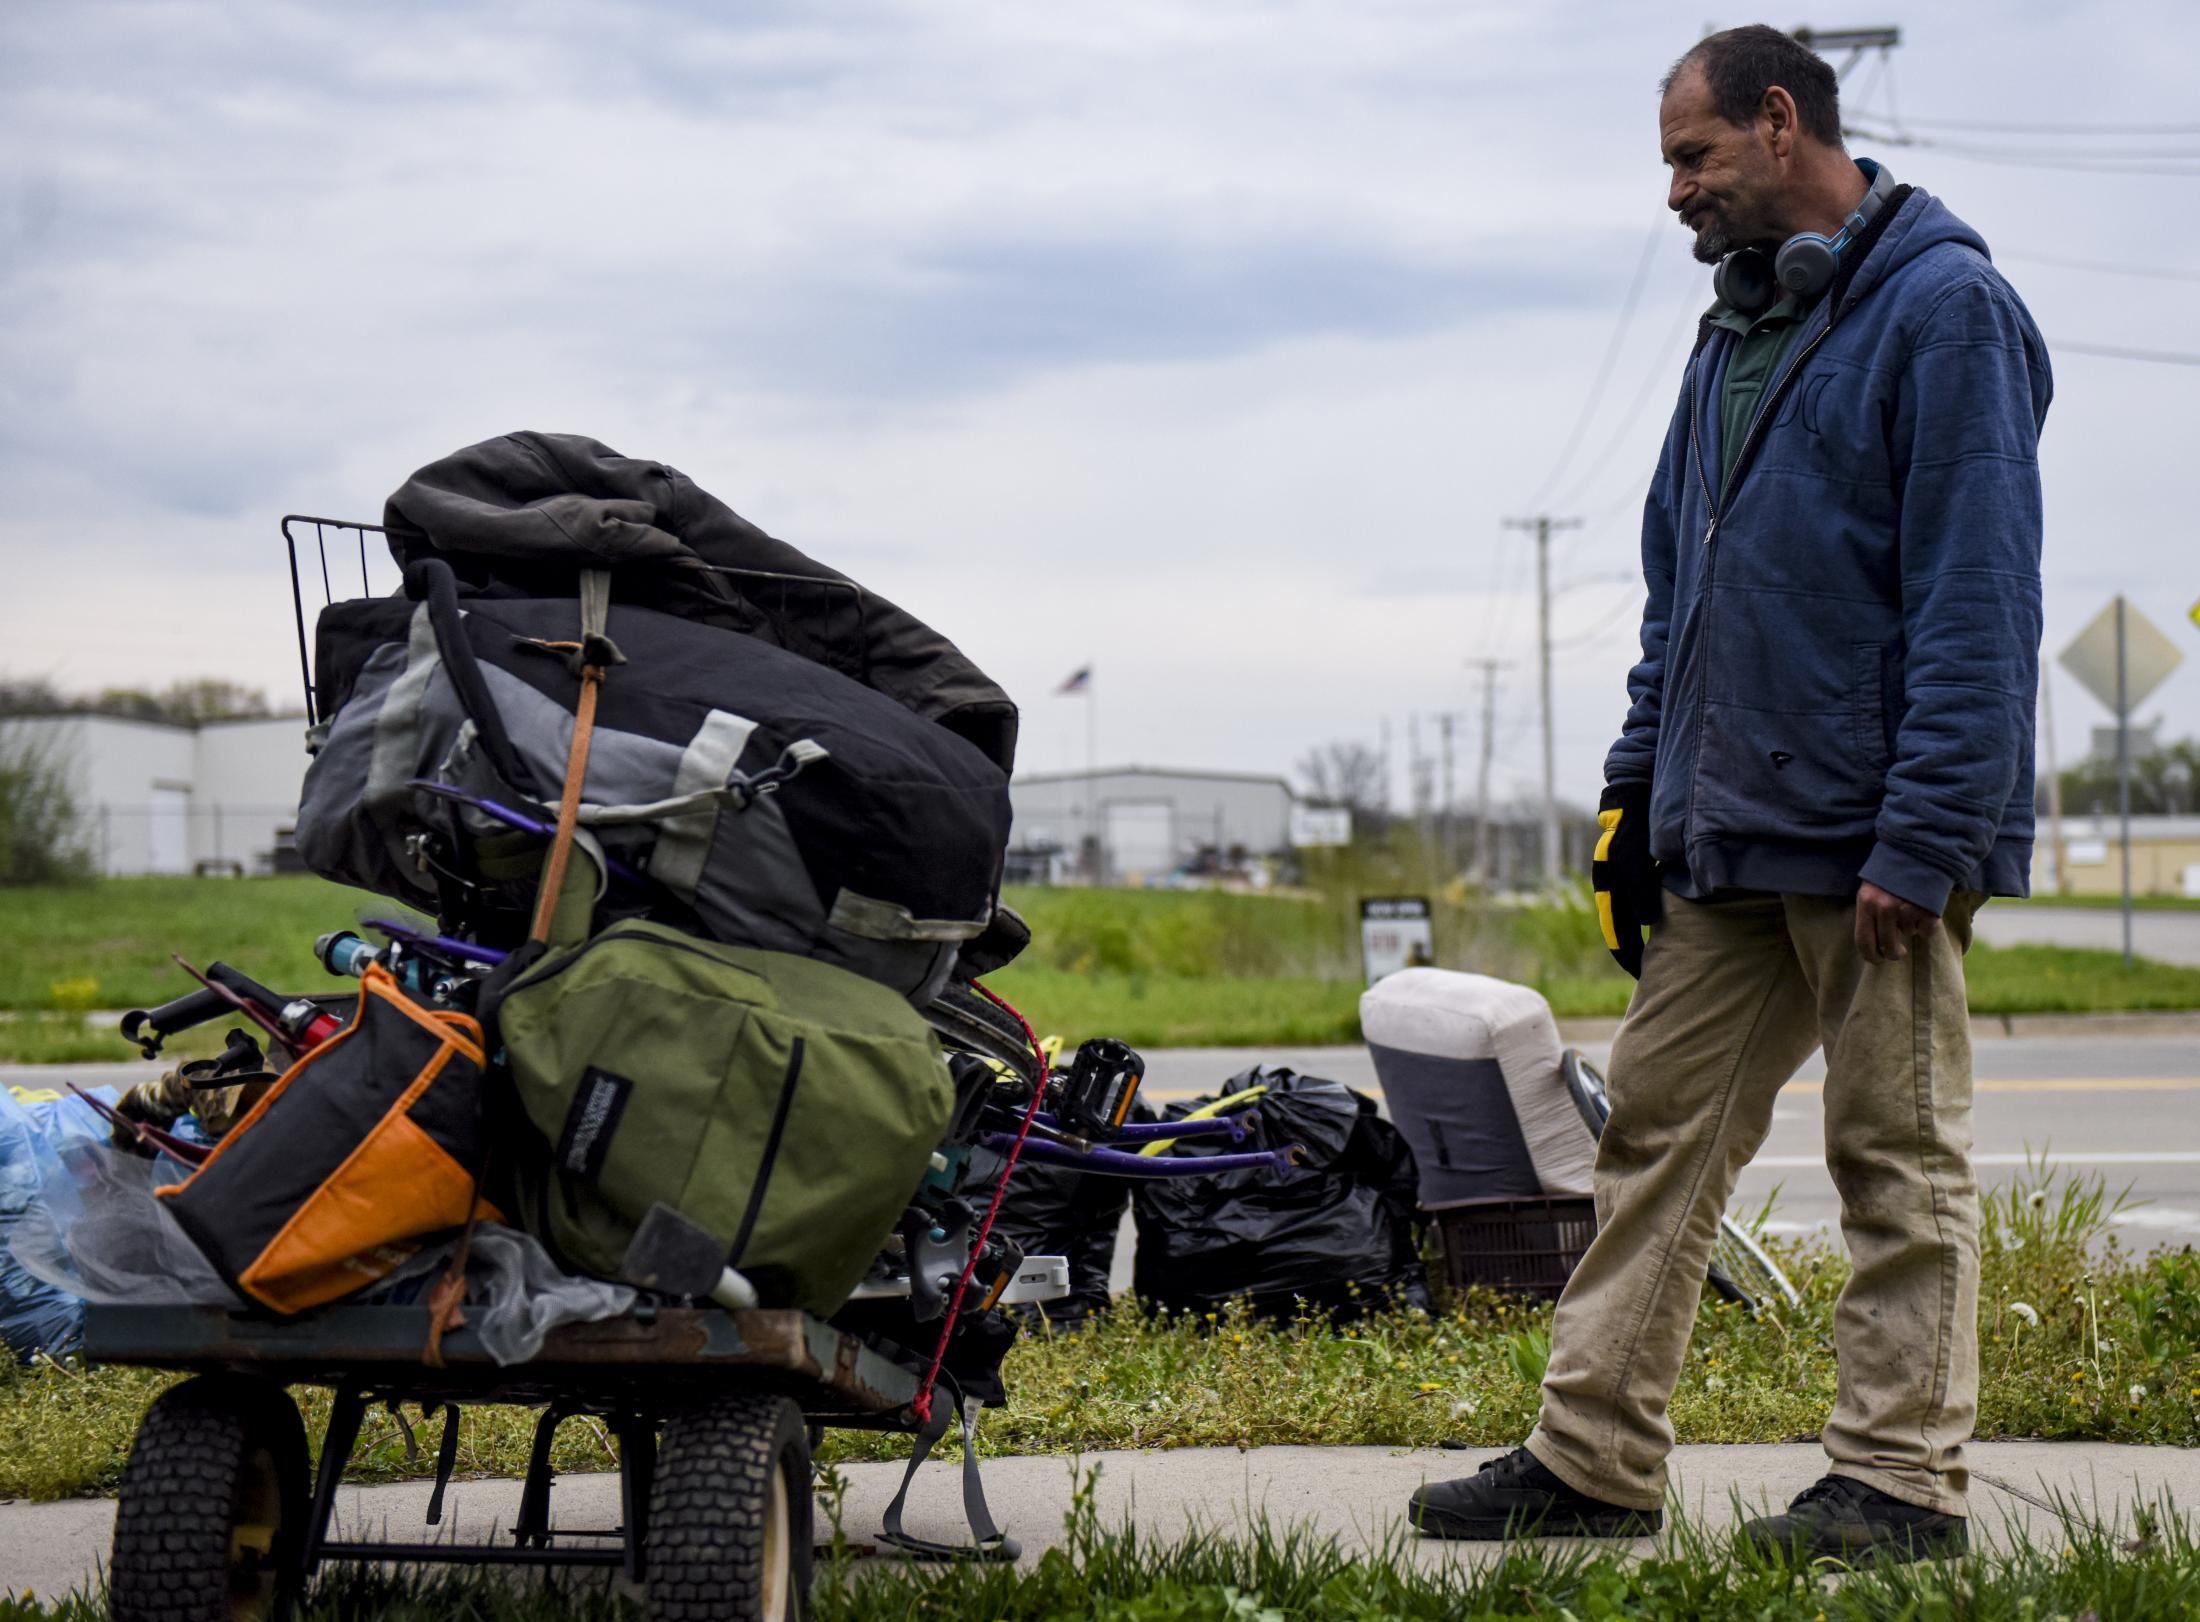 """Bobby Hall looks at a wagon of abandoned items he collected from his friends' old campsite April 11. Hall said he set these items aside to bring back to the family that lived there. """"I like to help where I can,"""" Hall said. """"I think some of this will be really valuable to them."""""""